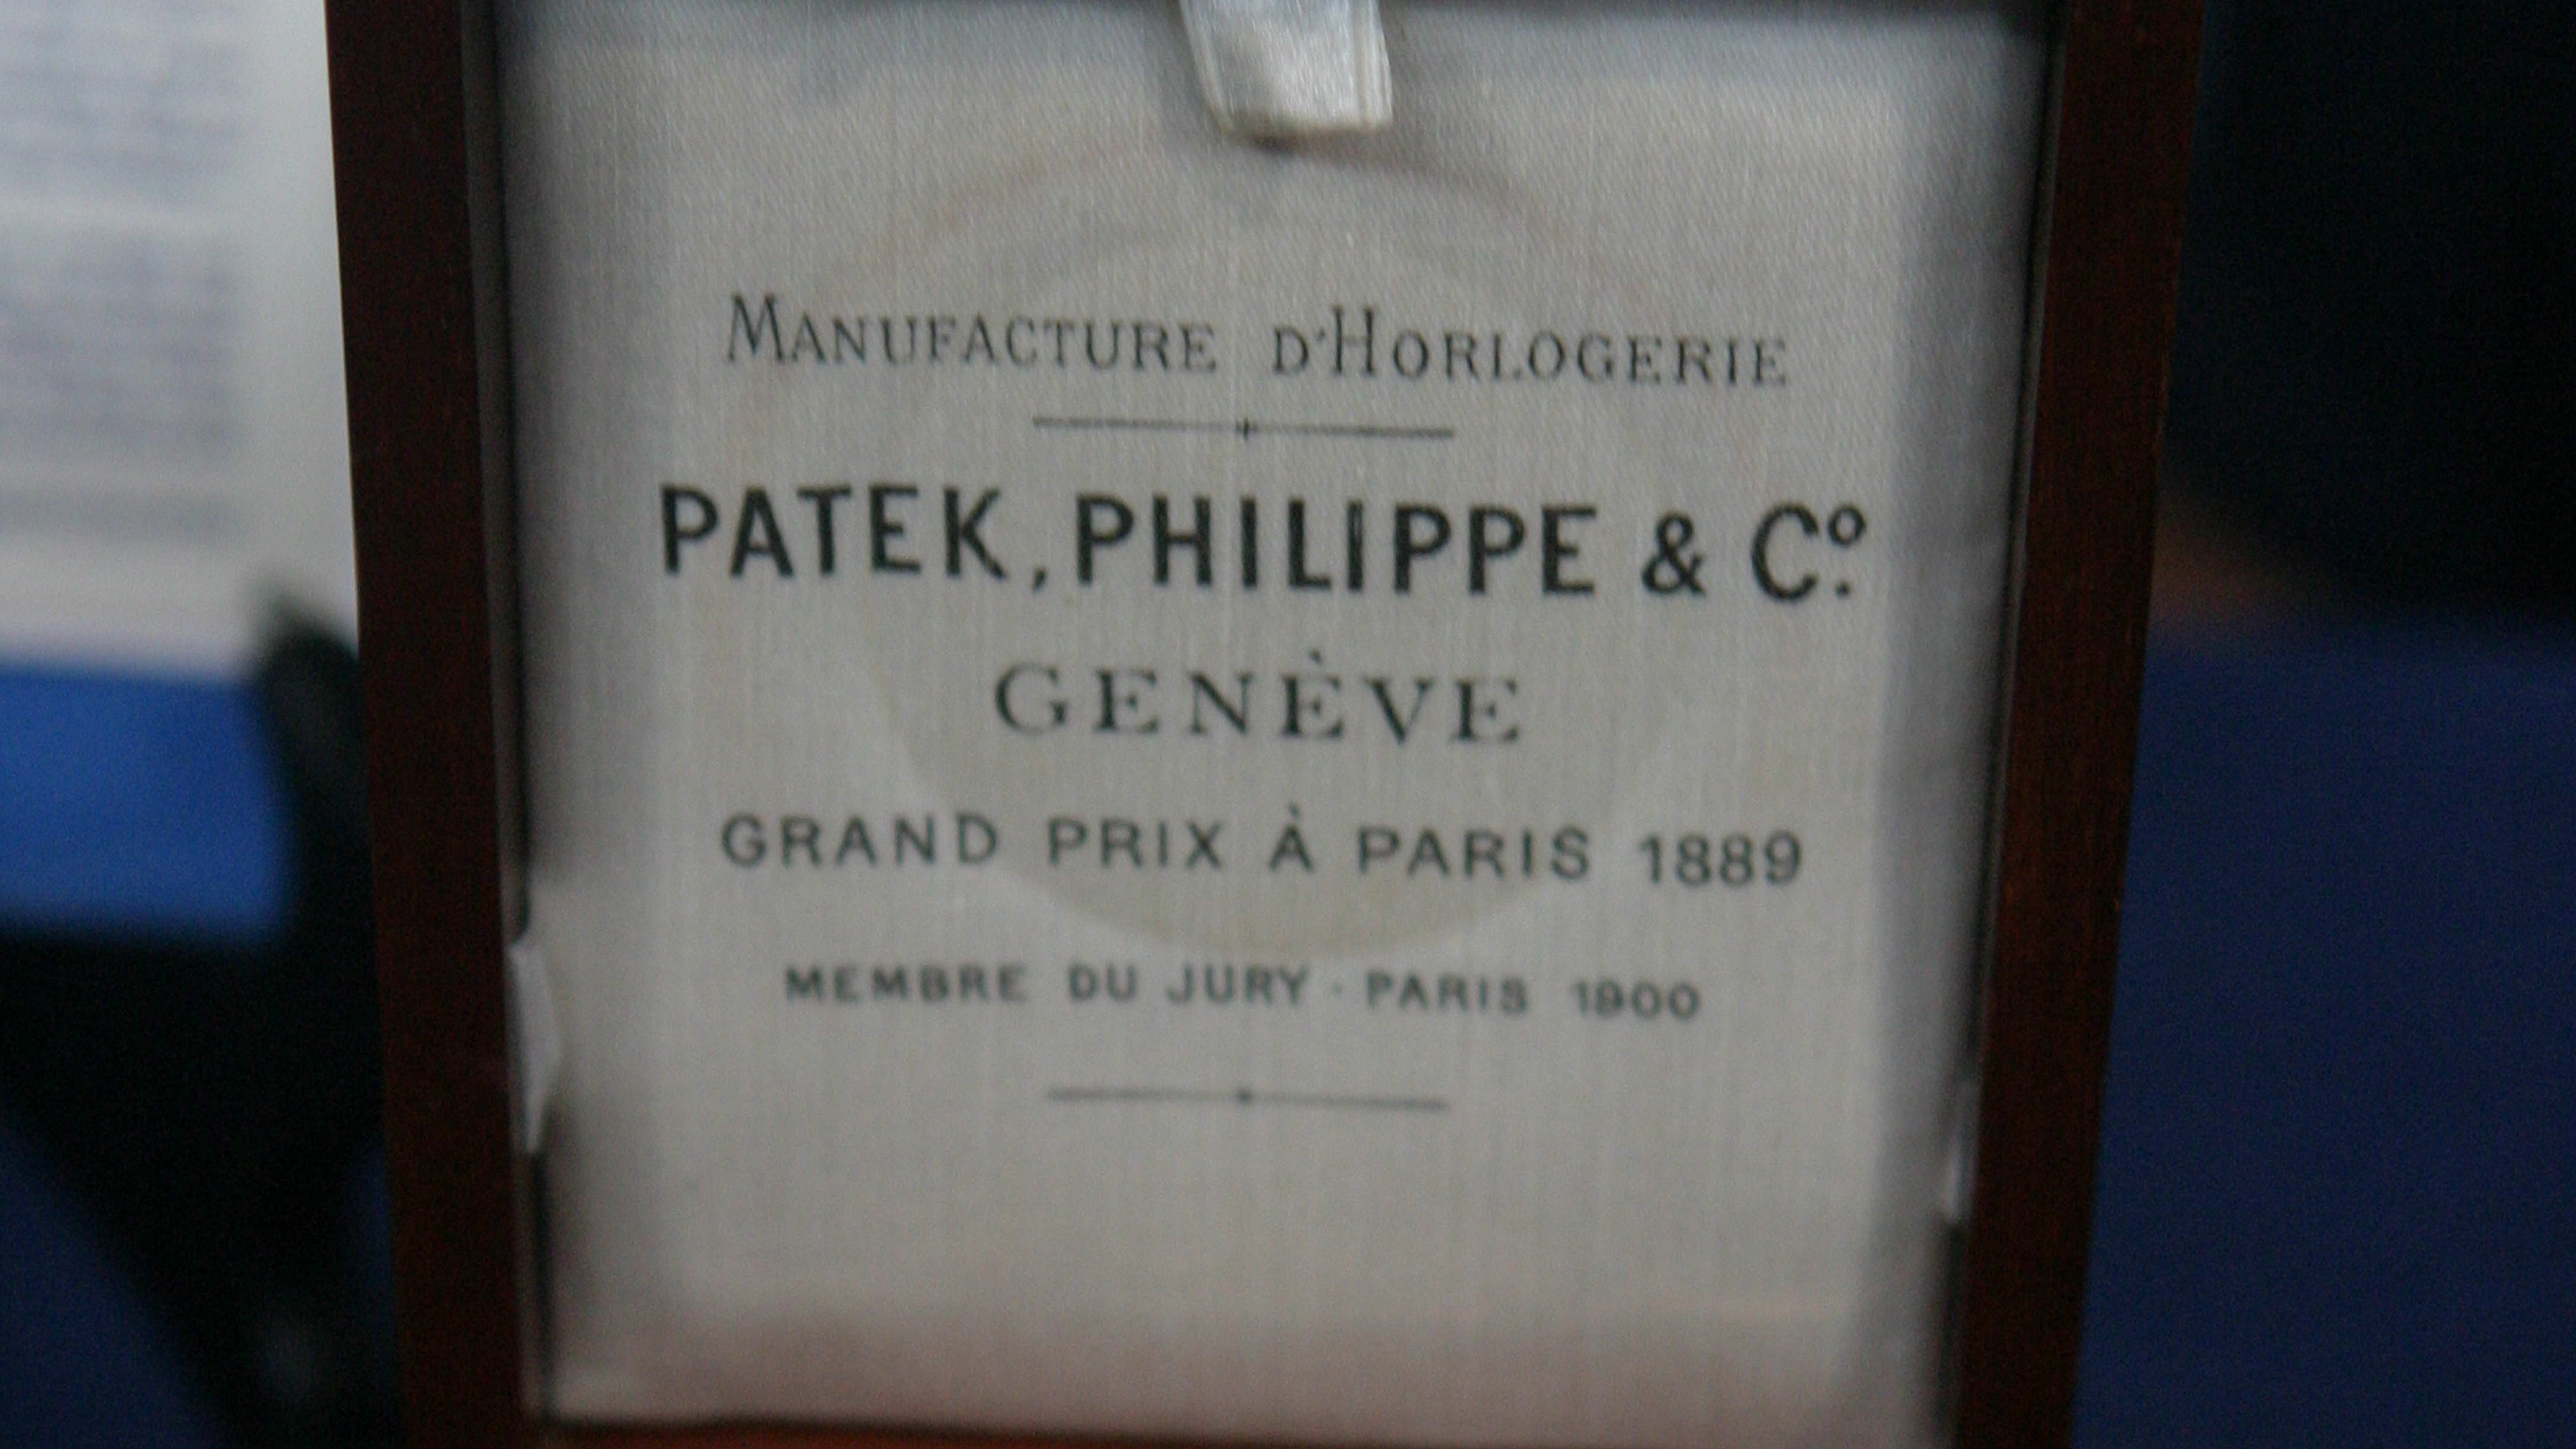 More on Patek Philippe